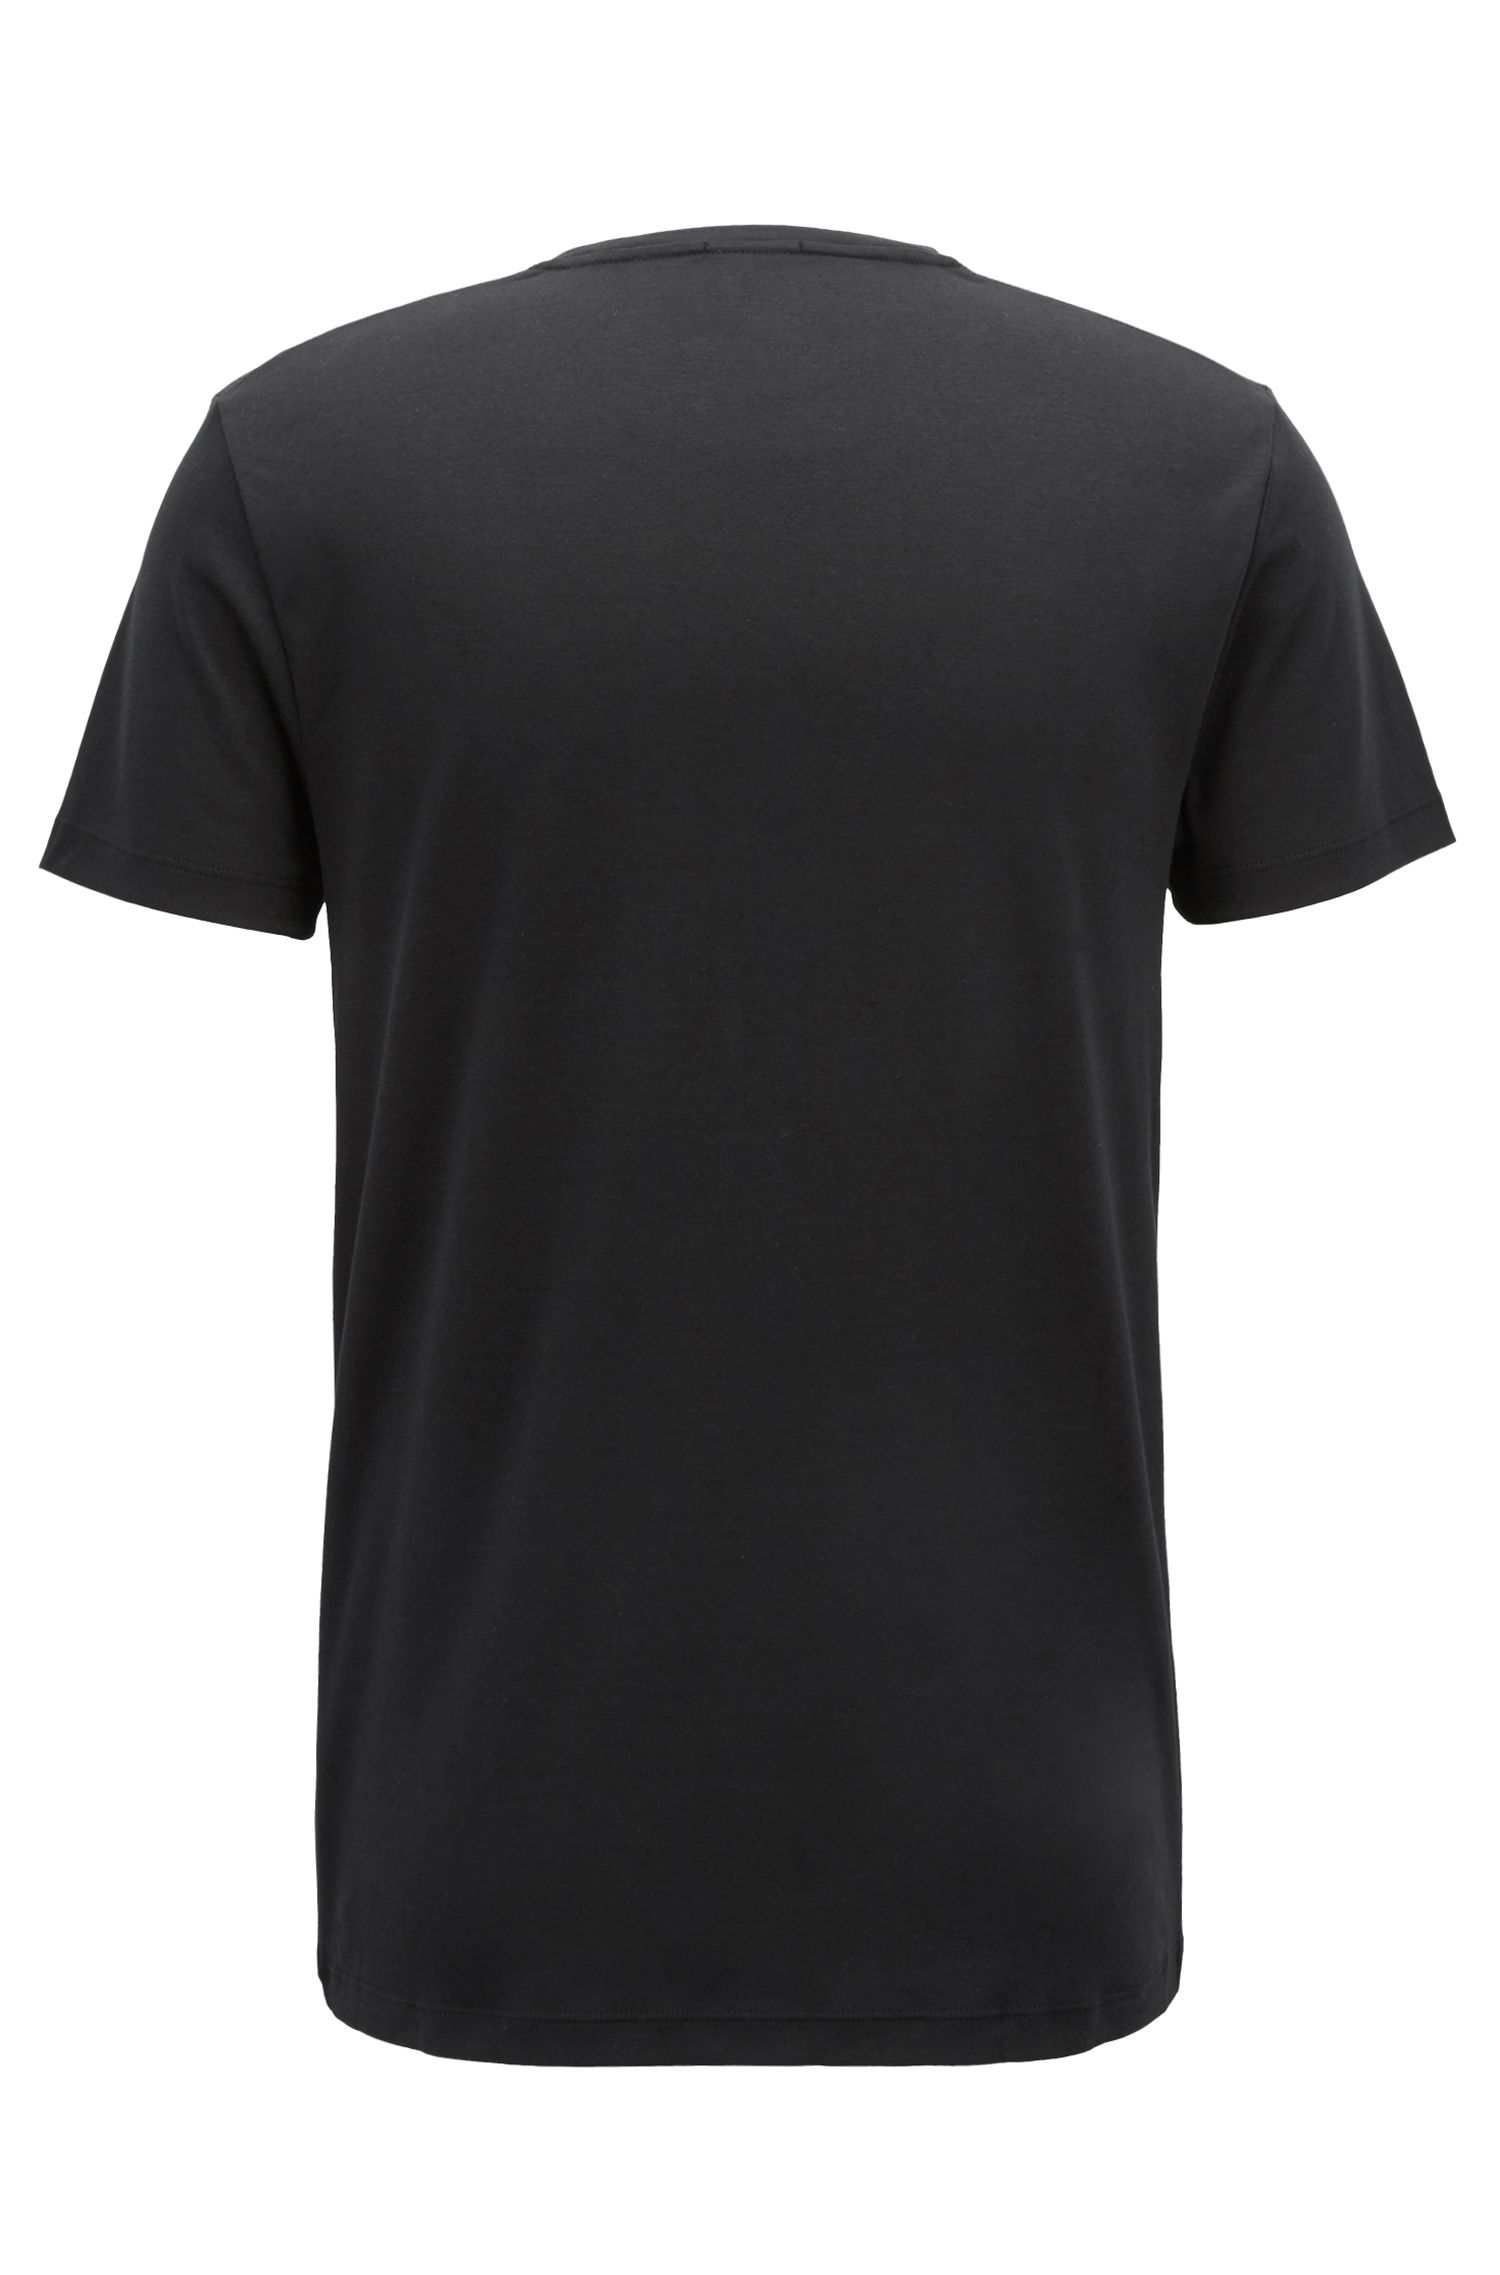 T-shirt slim fit in cotone con logo in velluto, Nero